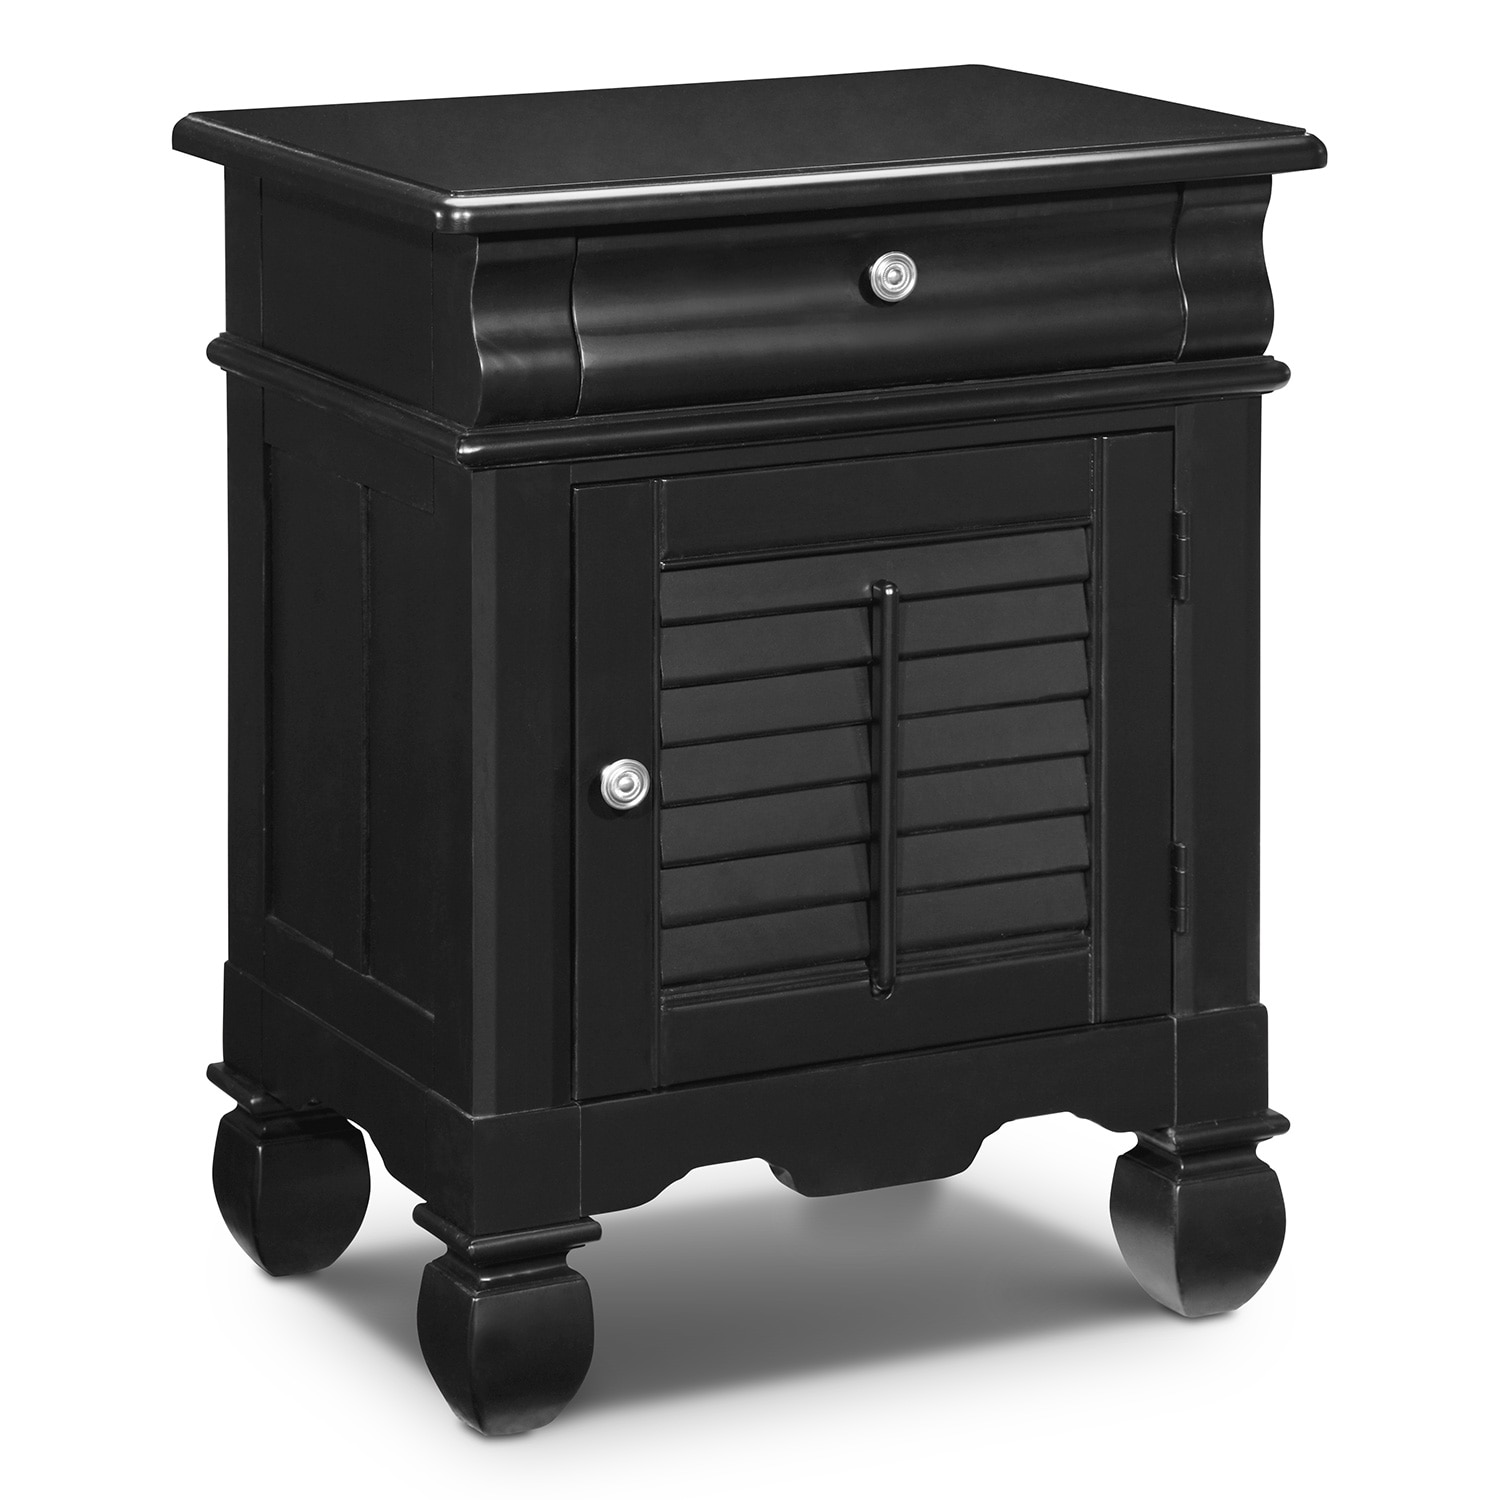 #676764  Cove Black Kids Furniture Door Nightstand Value City Furniture with 1500x1500 px of Most Effective Black Nightstand And Dresser 15001500 wallpaper @ avoidforclosure.info